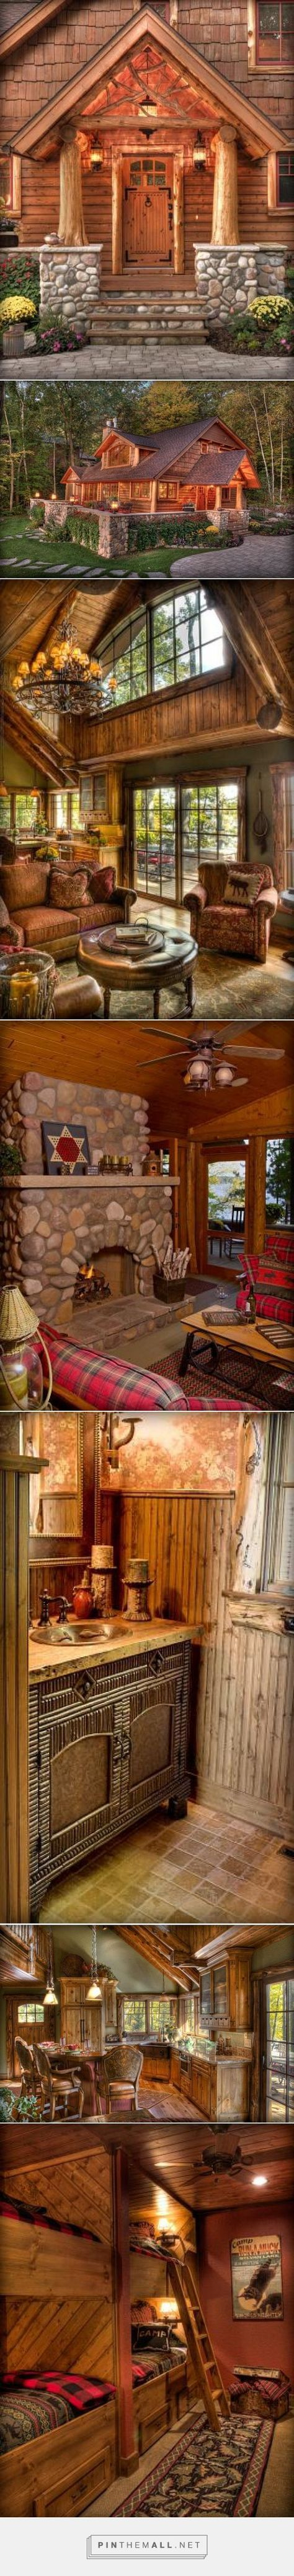 Best 25+ Log cabin furniture ideas on Pinterest | Country cabin ...